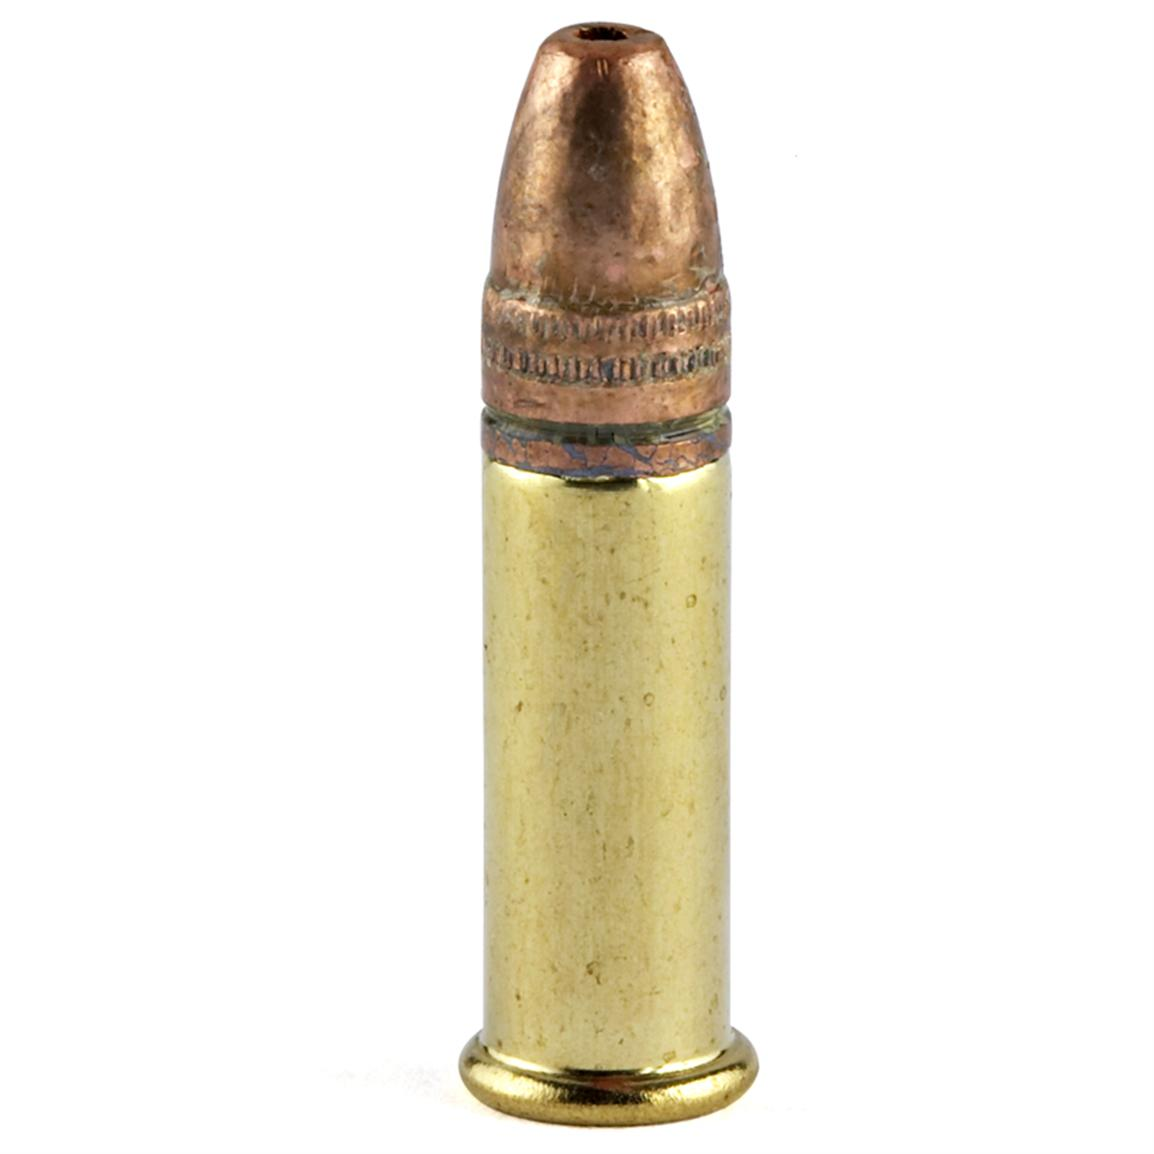 Copper plated 36 Grain hollow point bullet